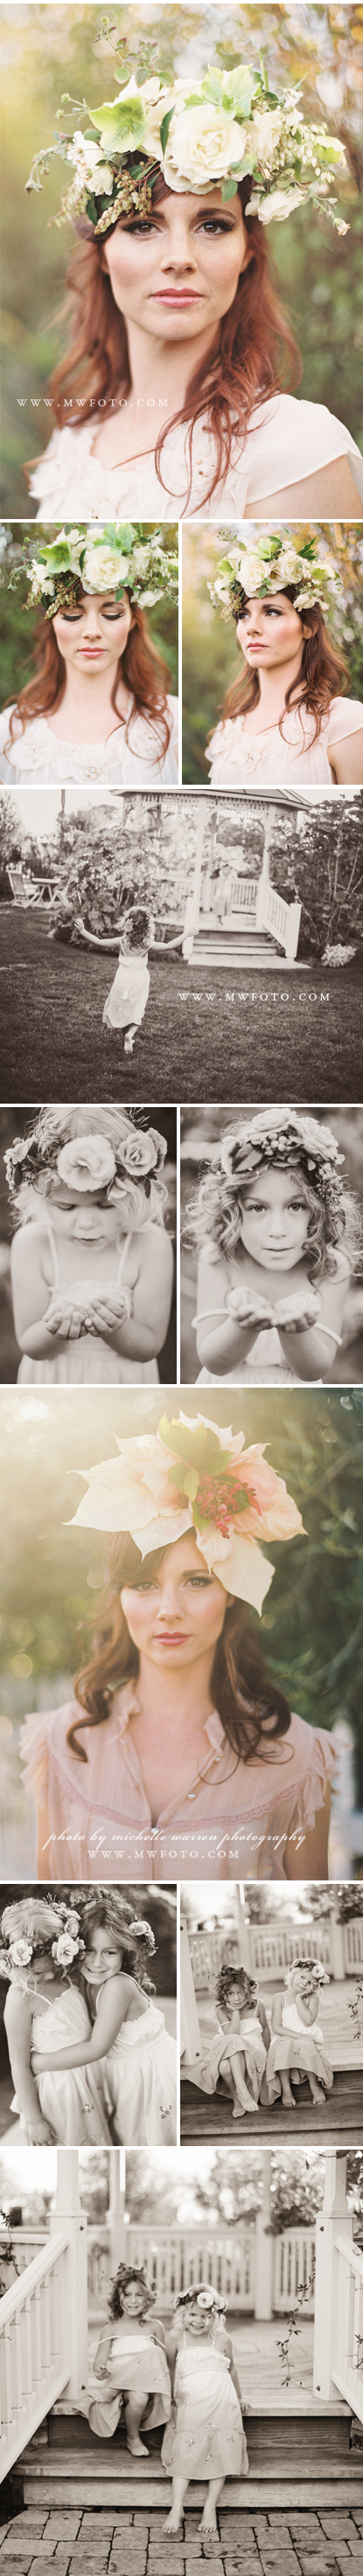 Bridal Floral Headpieces - Flower girls - San luis obispo florist